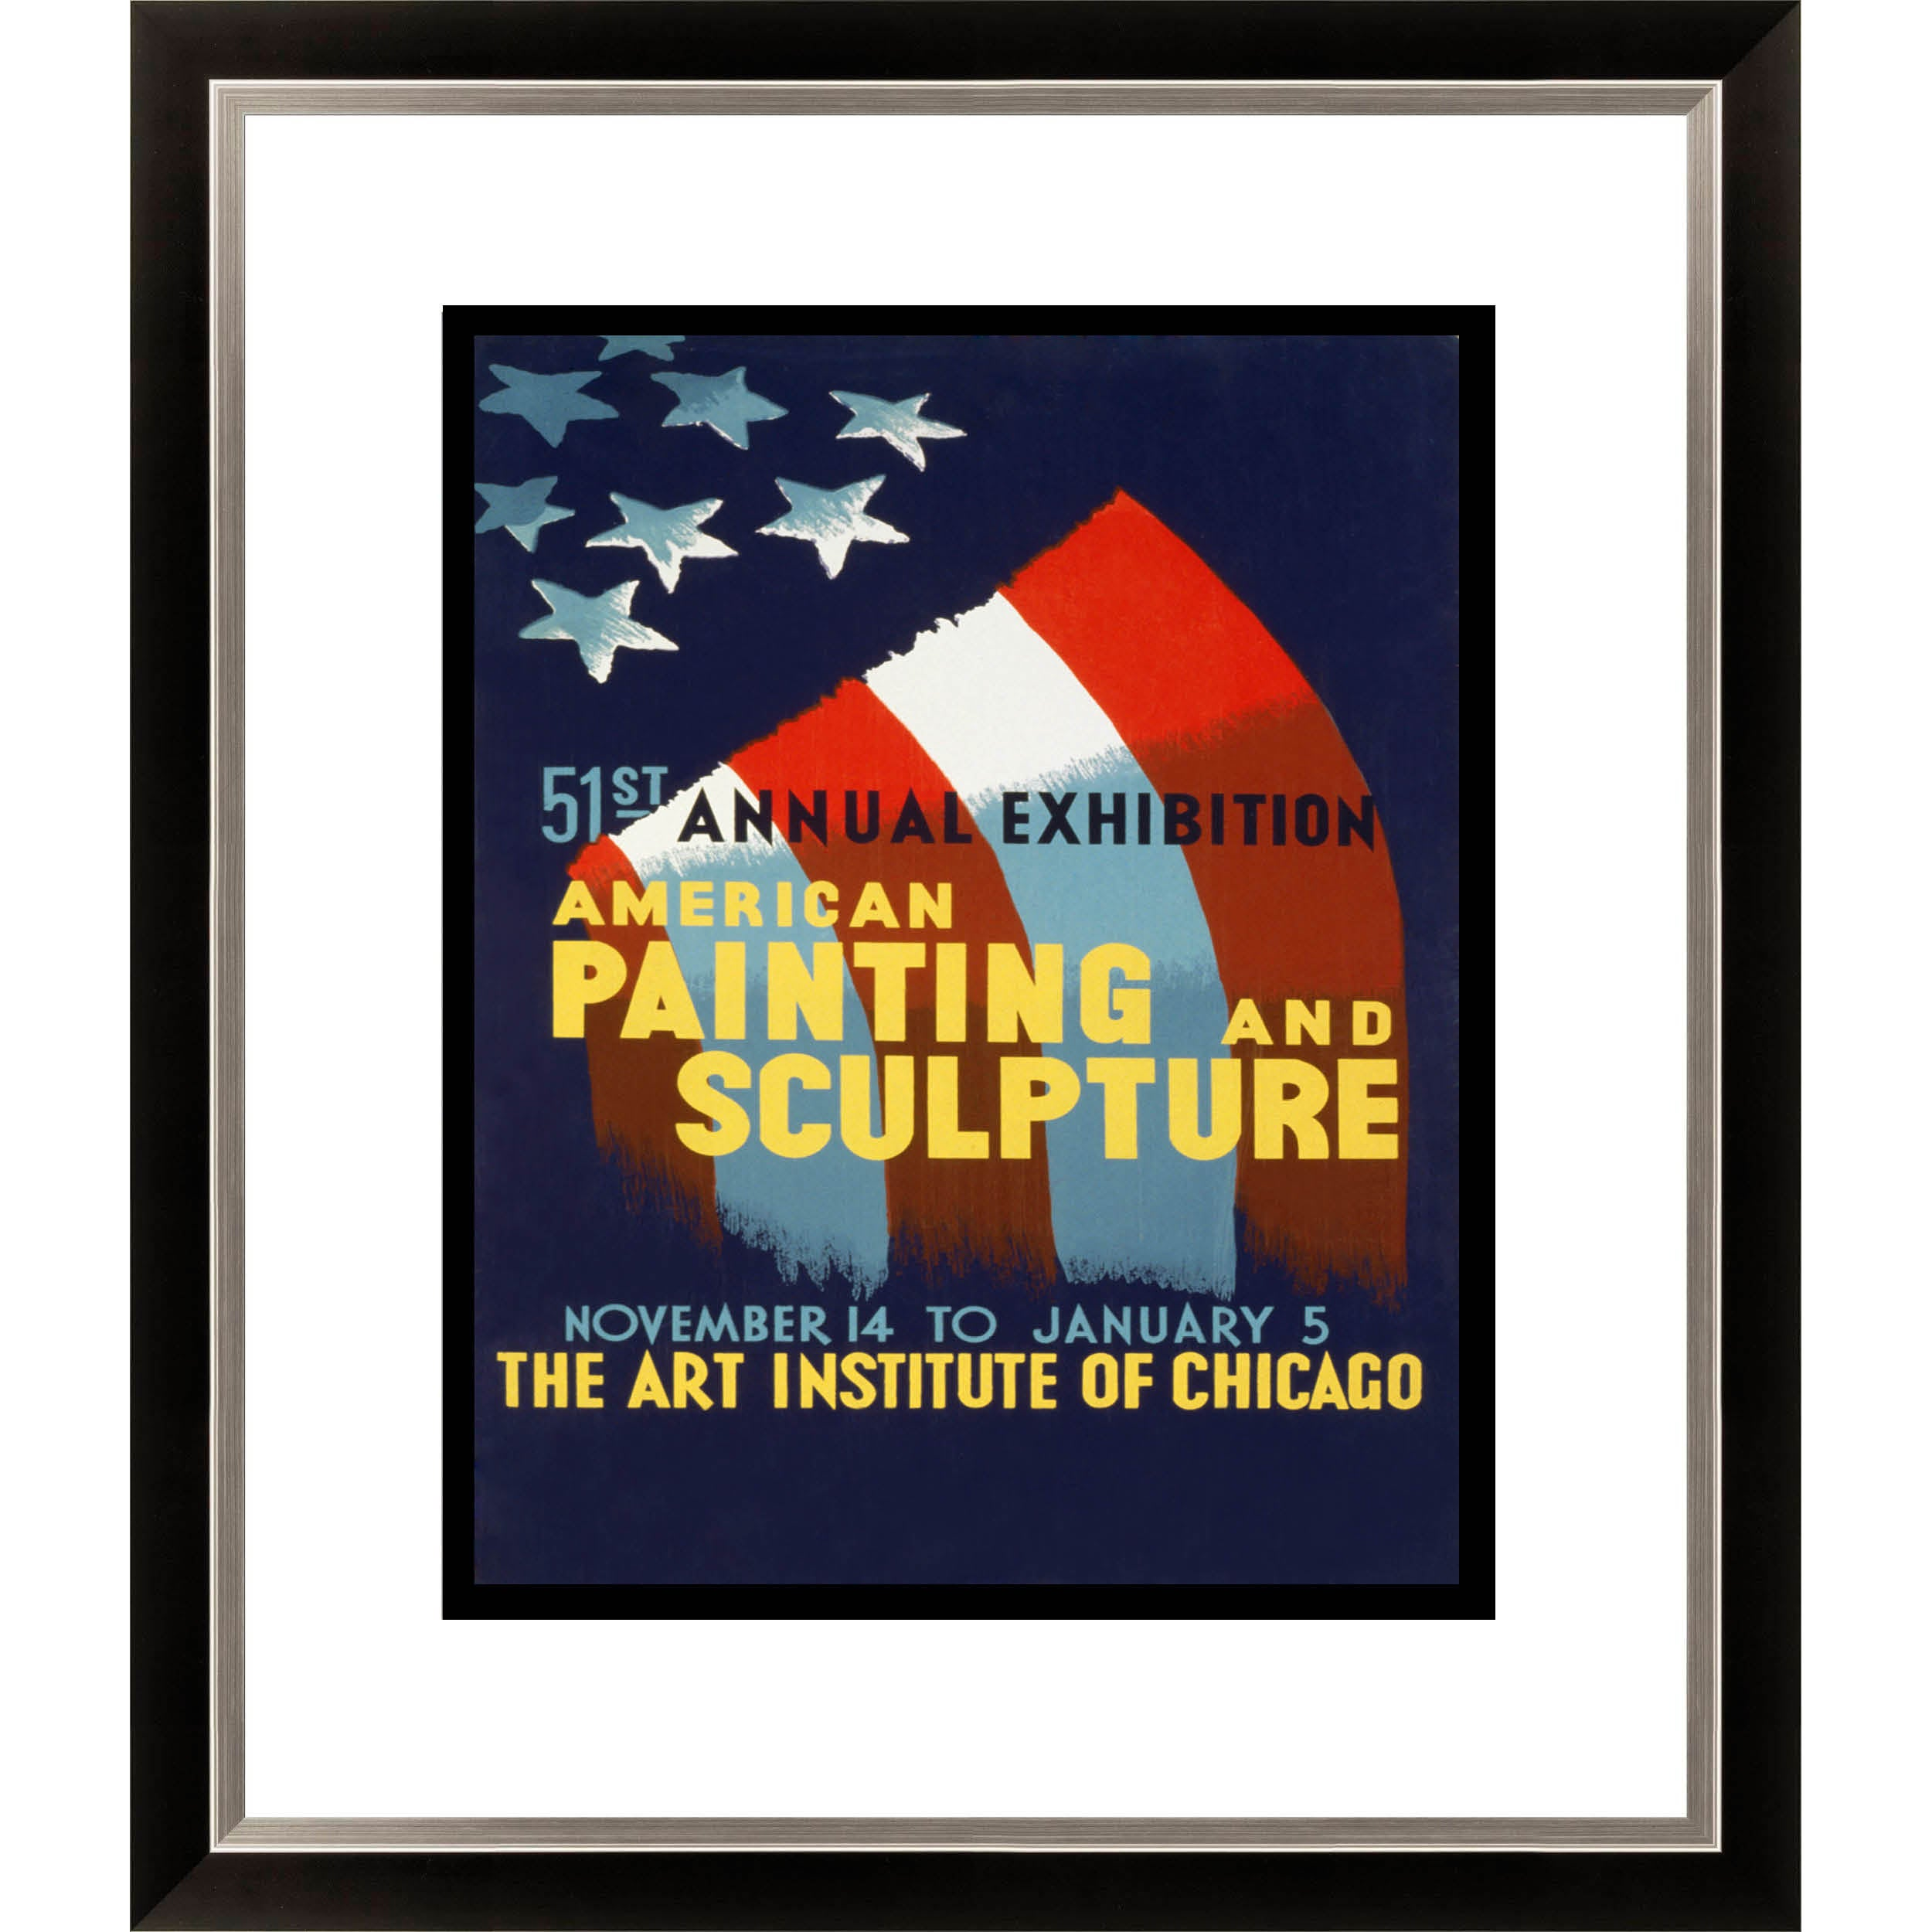 Gallery Direct 51st Annual Exhibition American Painting and Sculpture Framed Limited Edition Giclee Art